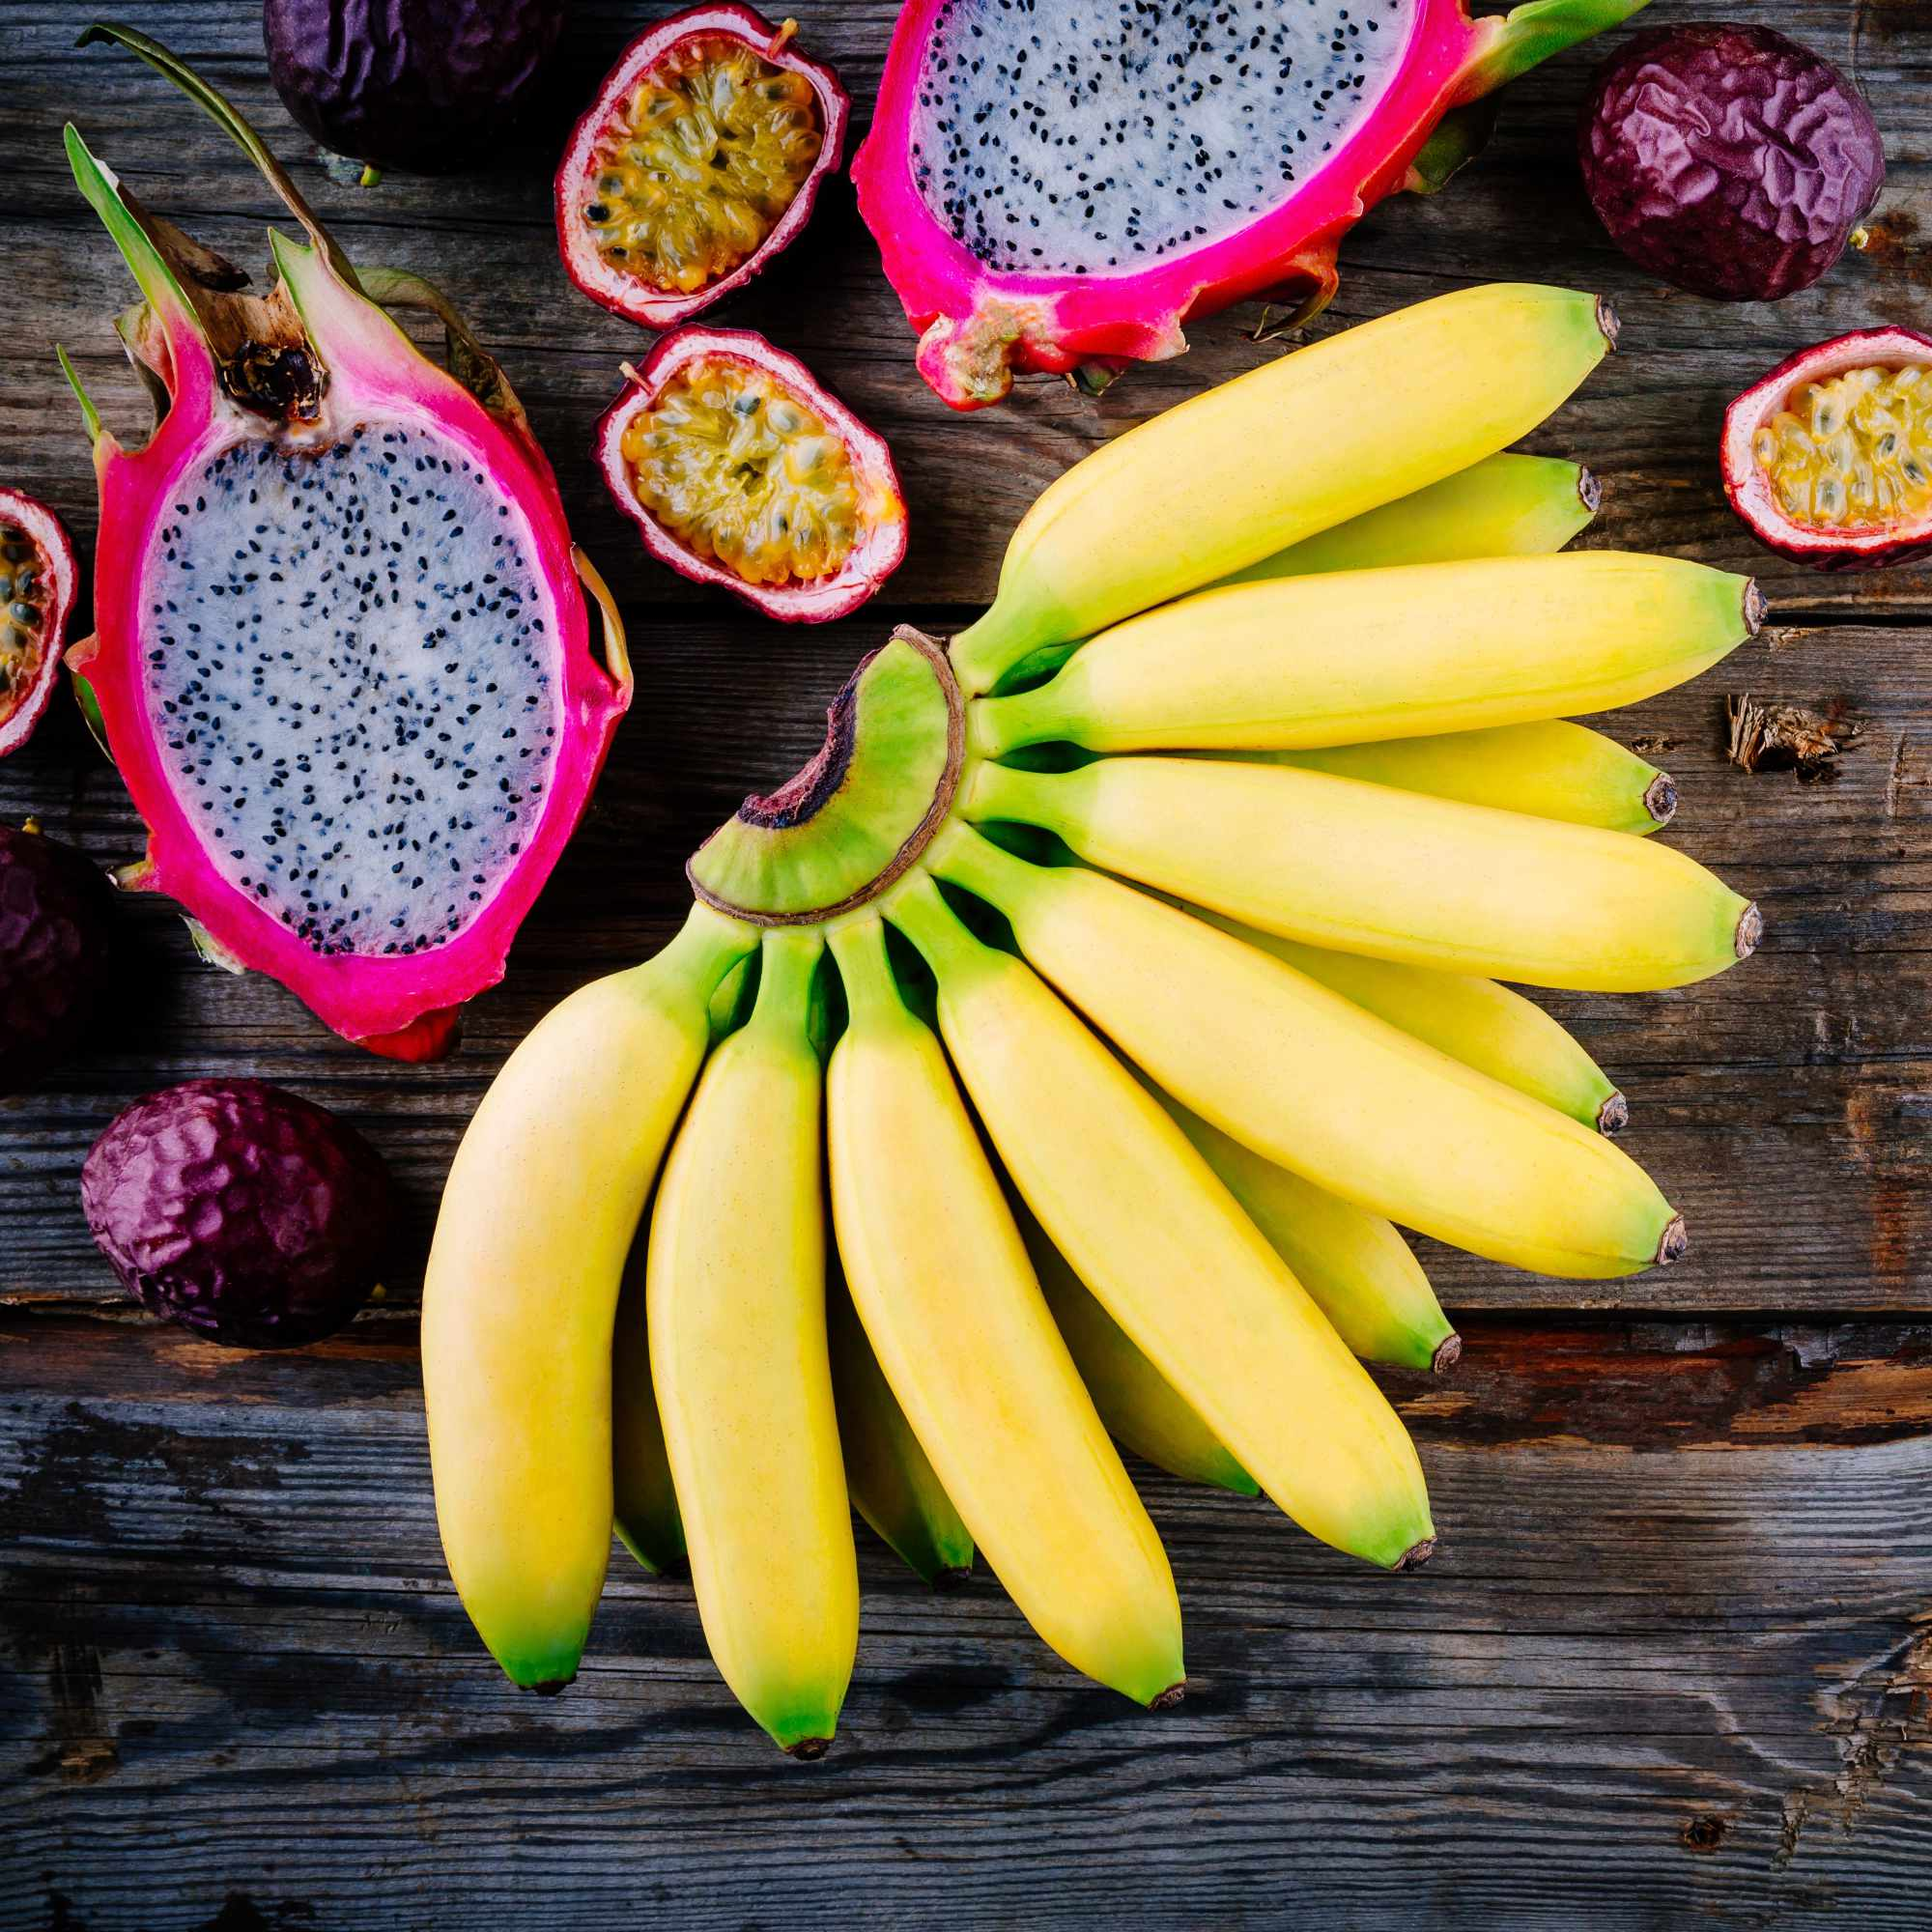 mix-of-tropical-fruits-with-banana-passion-fruit-a-PEVFD79